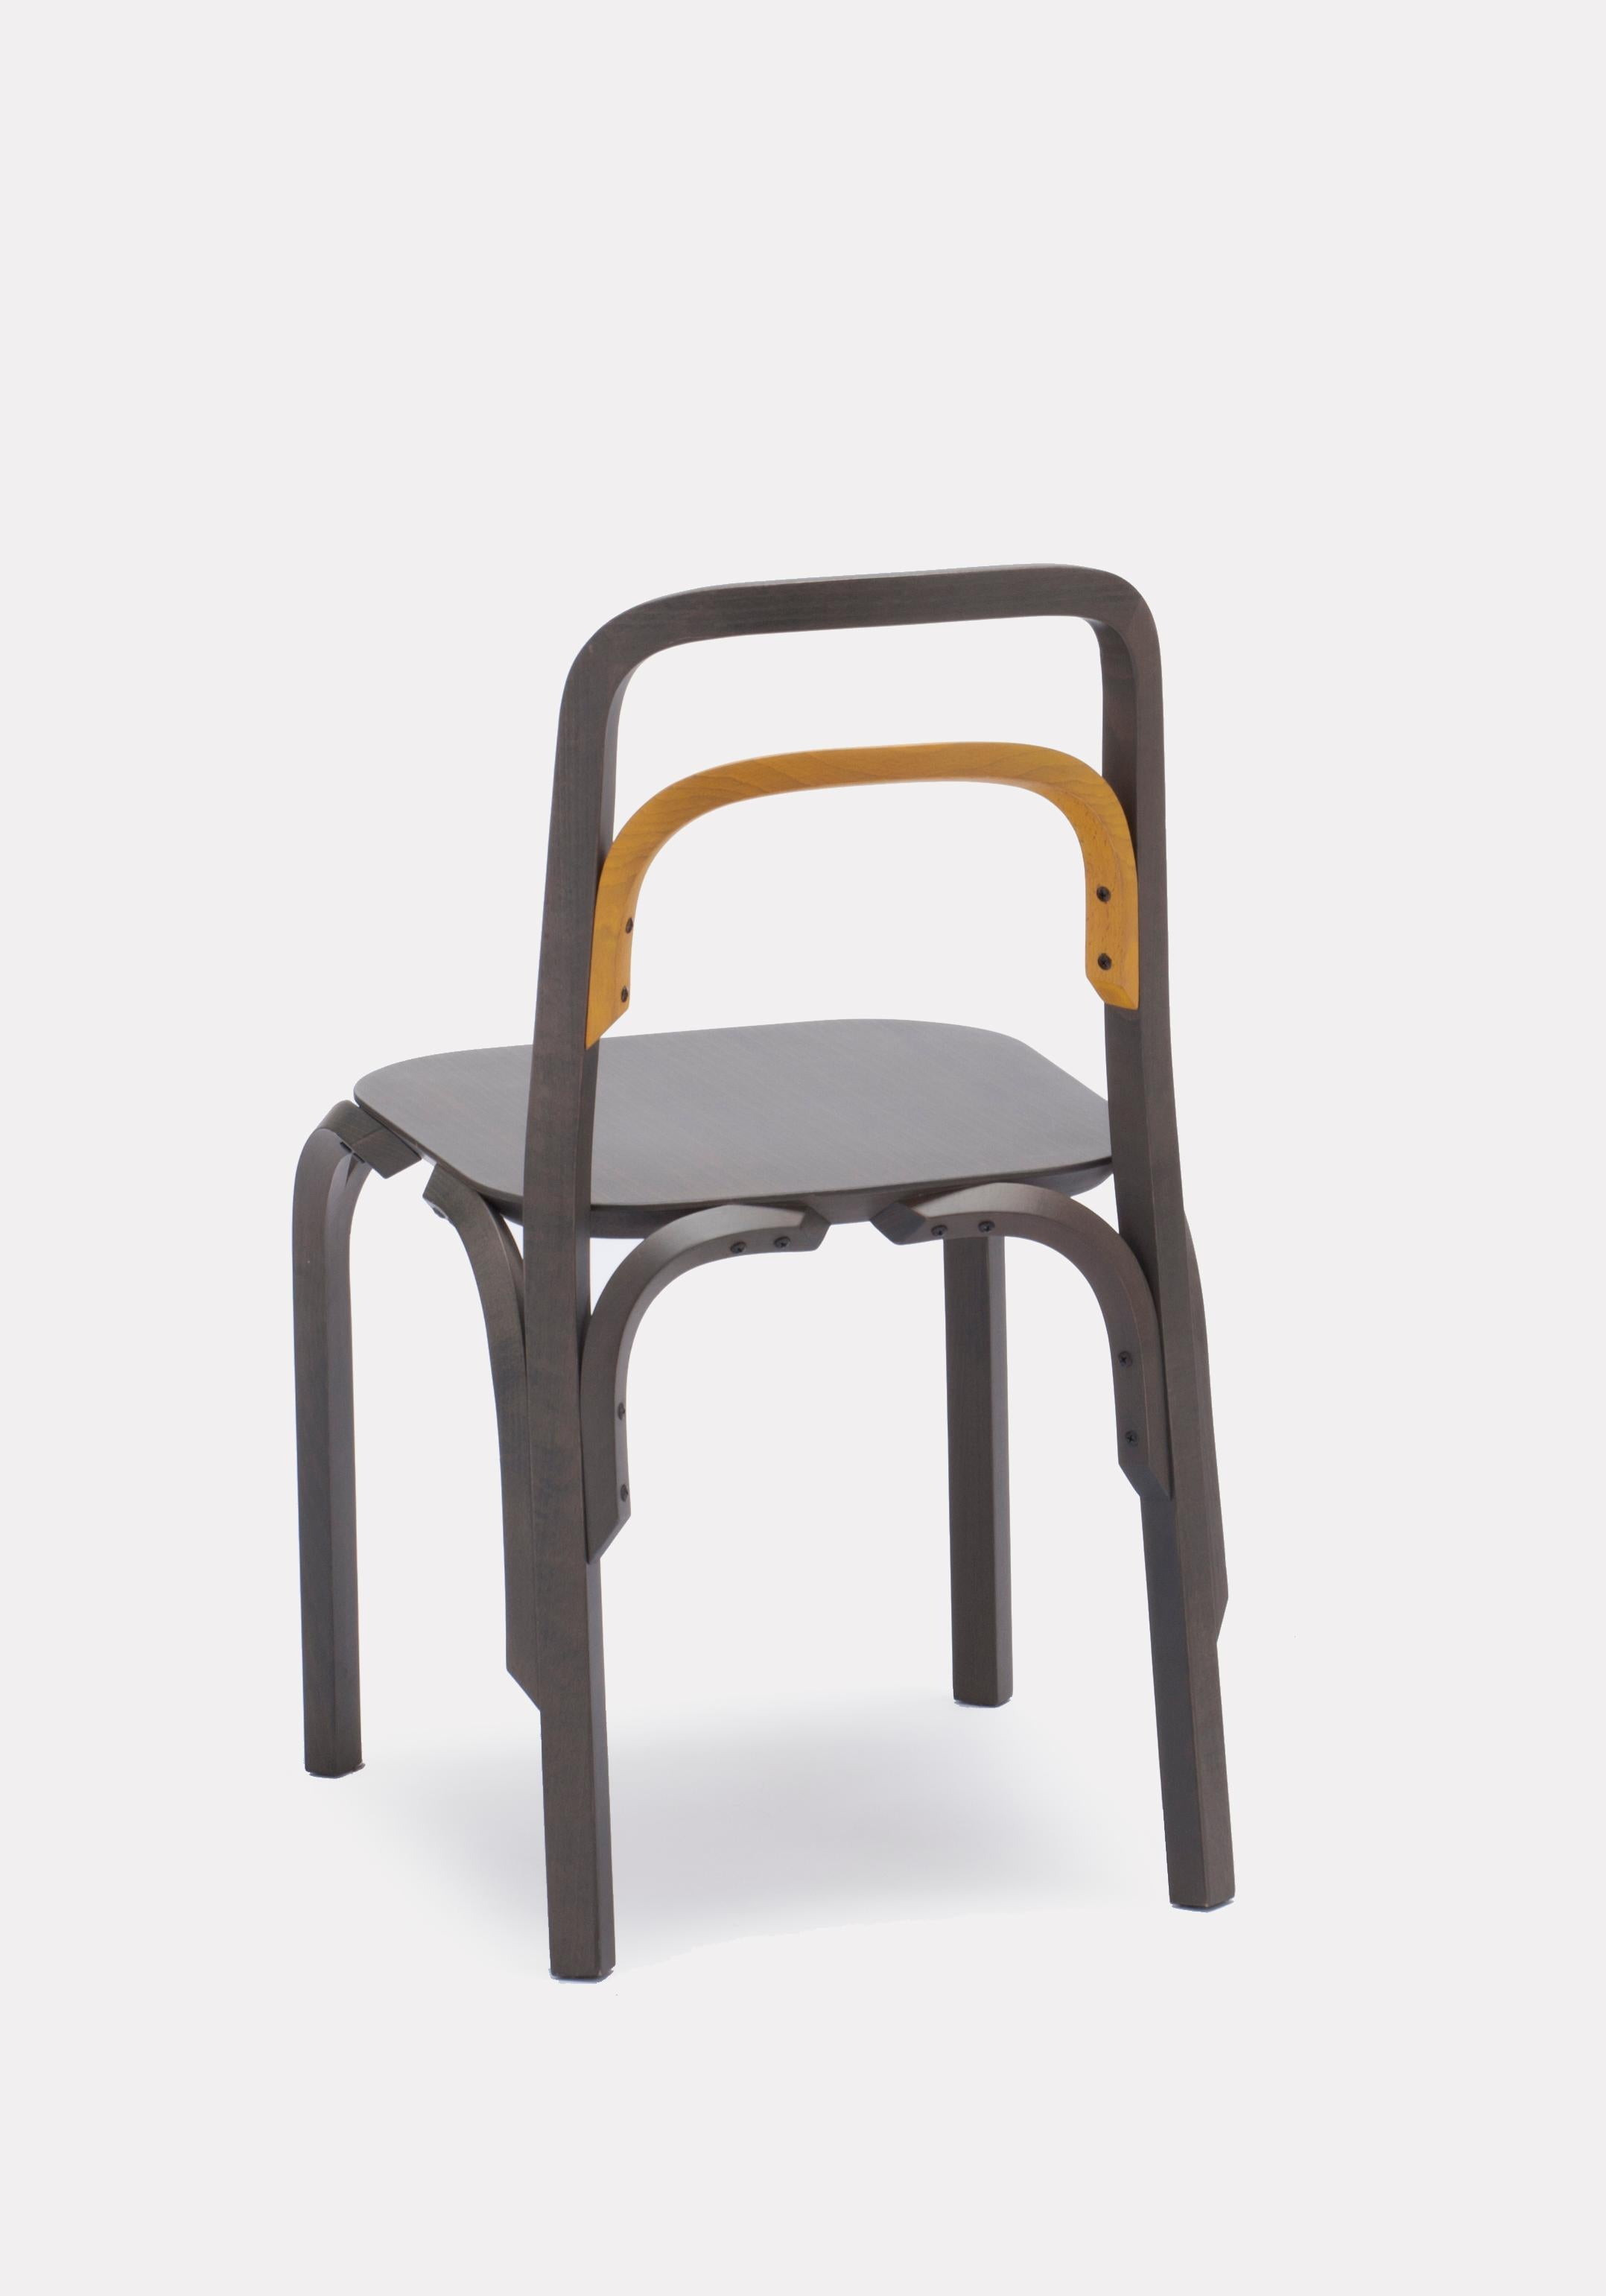 Chair Sessel Established Sons Sessel Chair In Gray Beech With Yellow Back By Martino Gamper